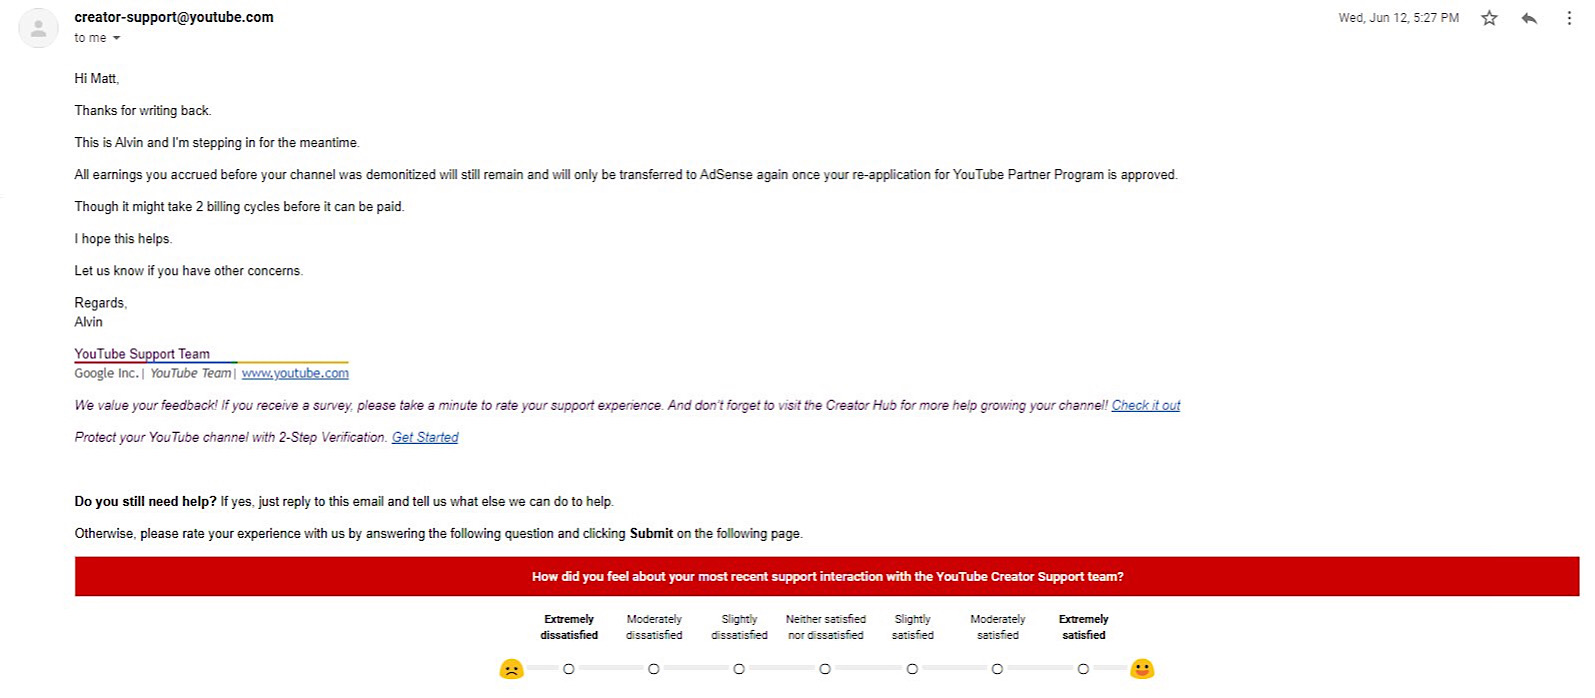 "YouTube's private statement that ""all earnings you accrued before your channel was demonitized will still remain and will only be transferred to AdSense again once your re-application for YouTube Partner Program is approved."""